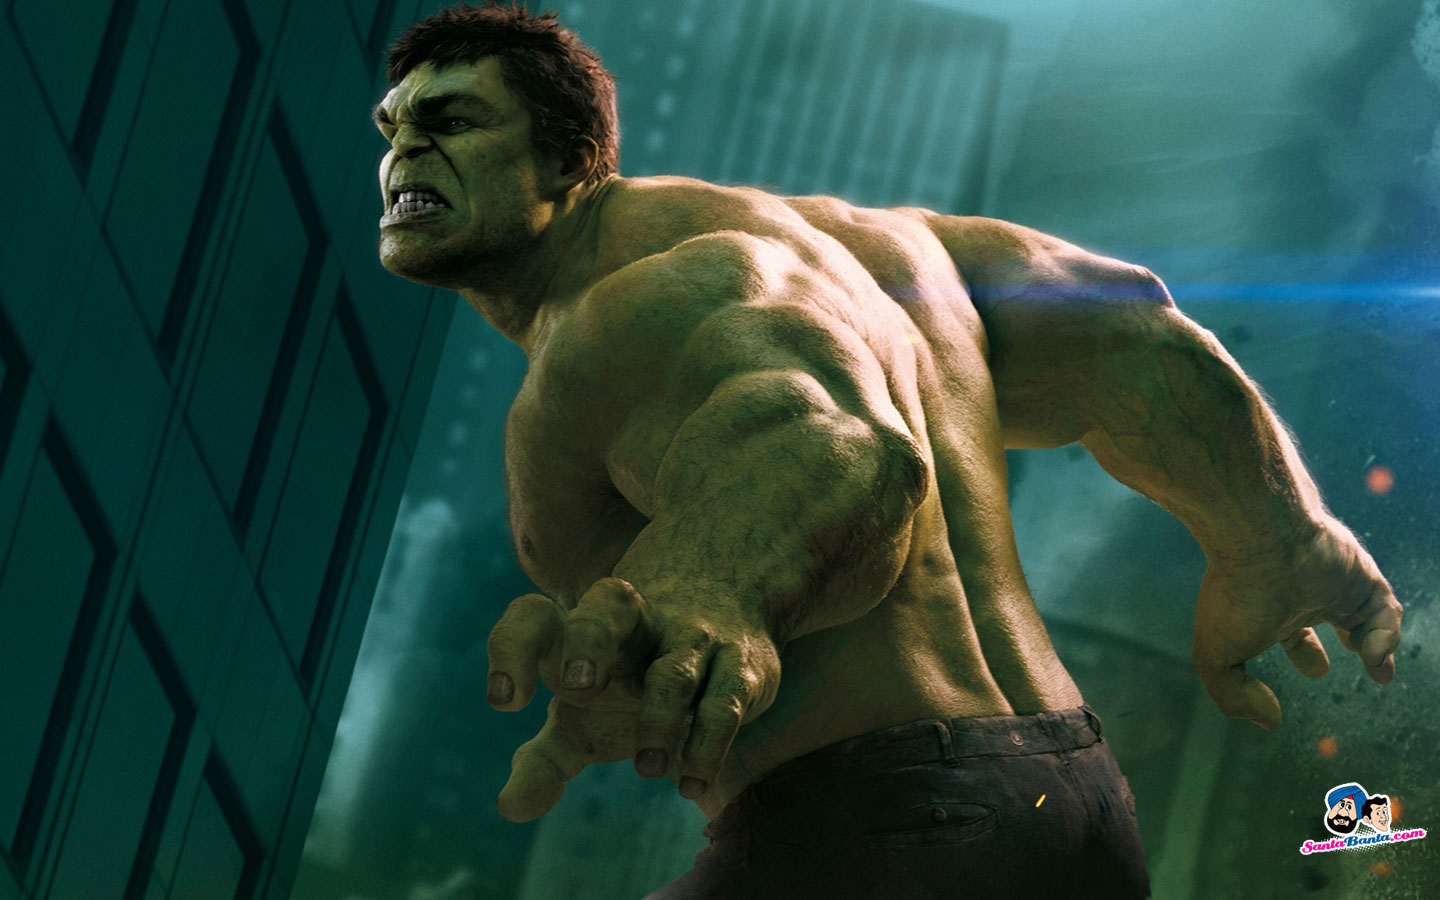 the avengers hulk, the avengers hulk Wallpaper, the avengers 2012